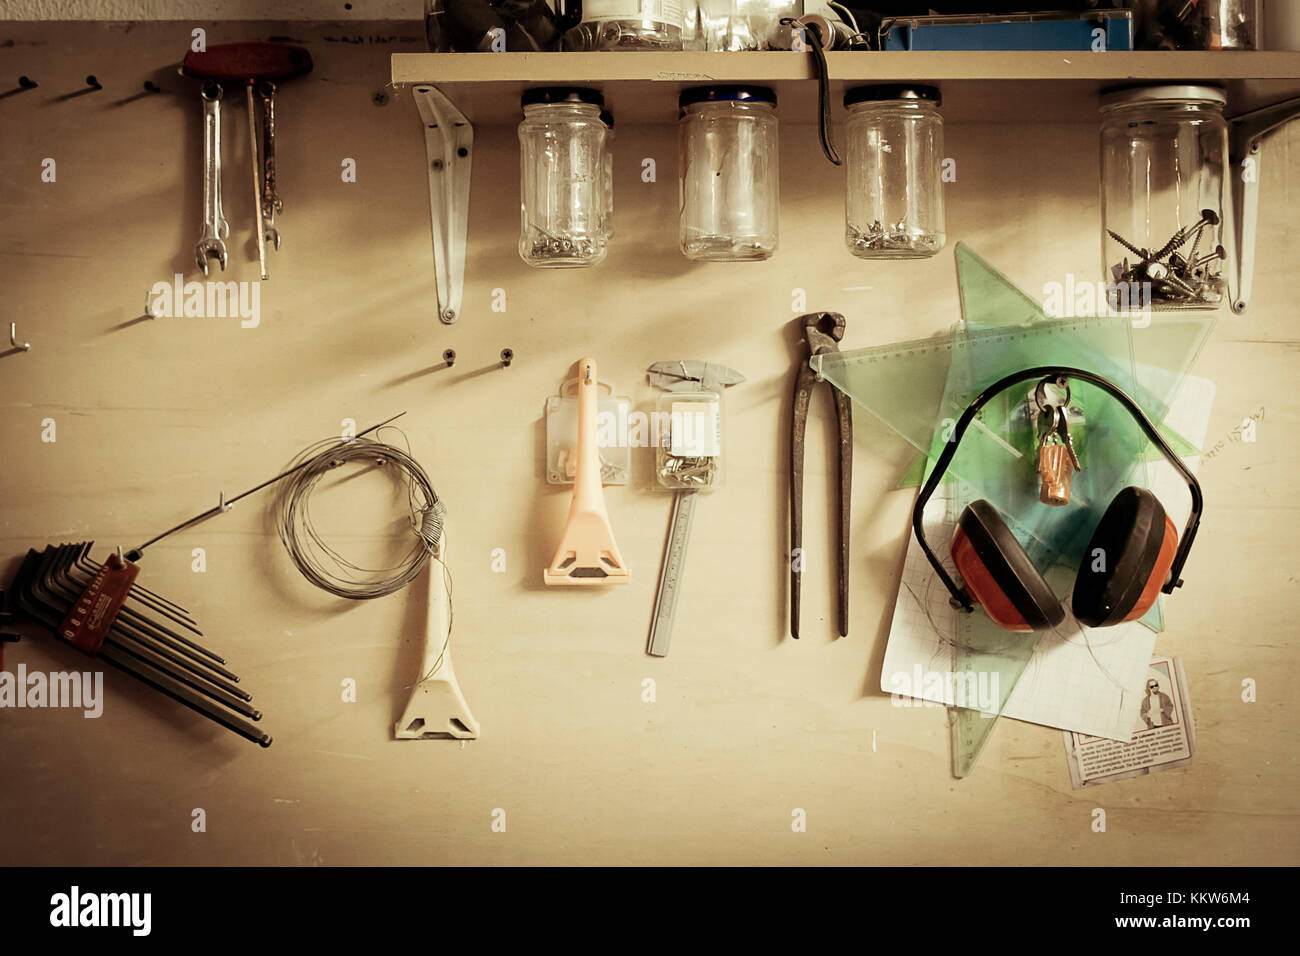 Power Tools Stock Photos Amp Power Tools Stock Images Alamy